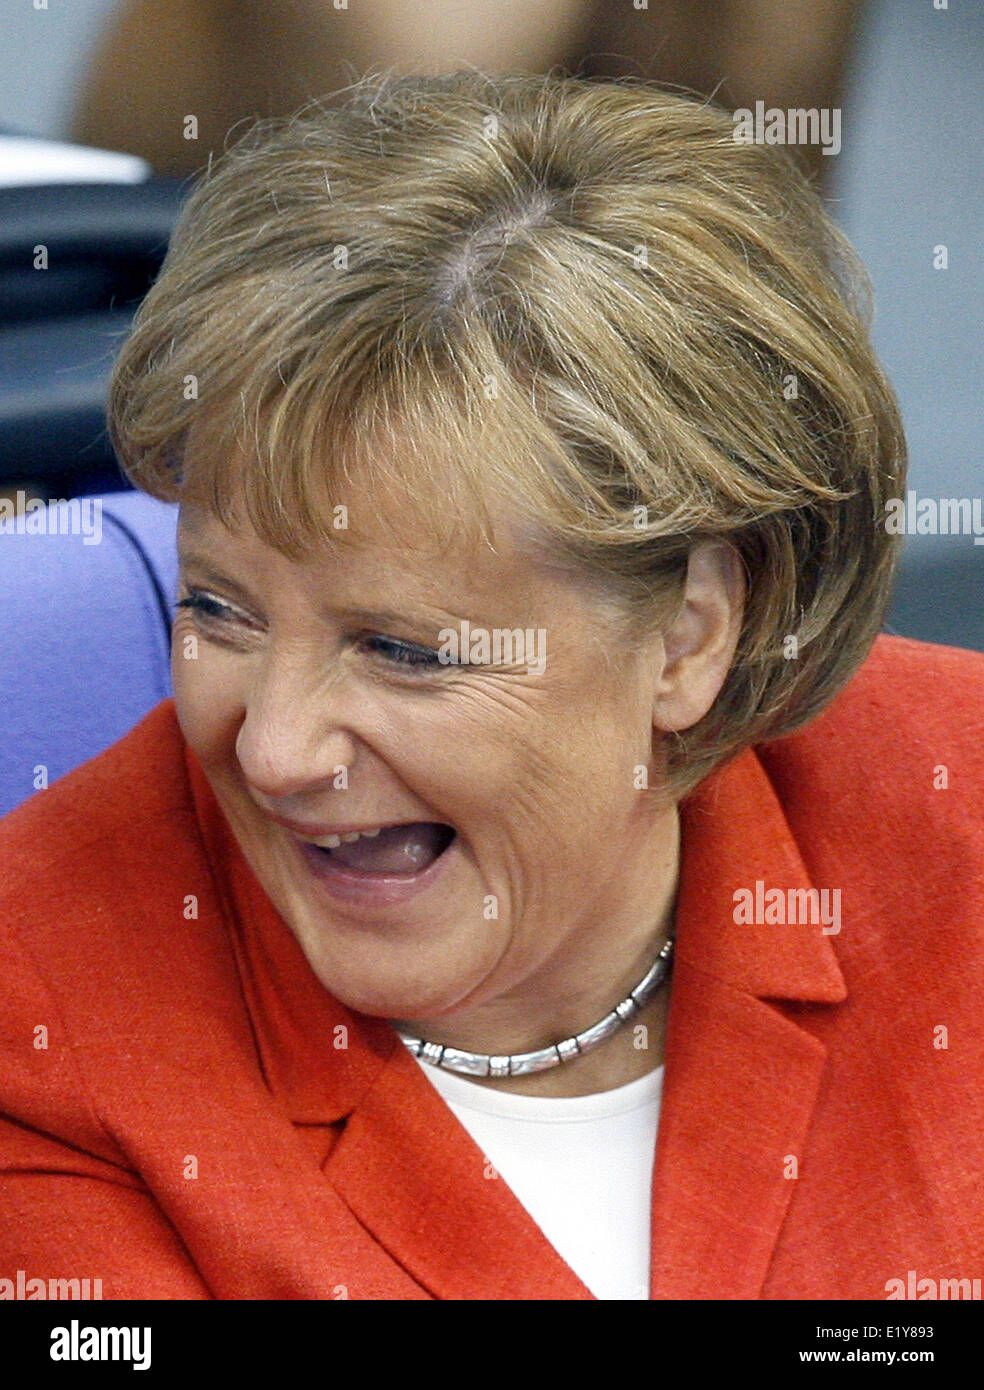 Chancellor Angela Merkel laughs during the debate about climate protection in the German Bundestag (26.04.2007) - Stock Image